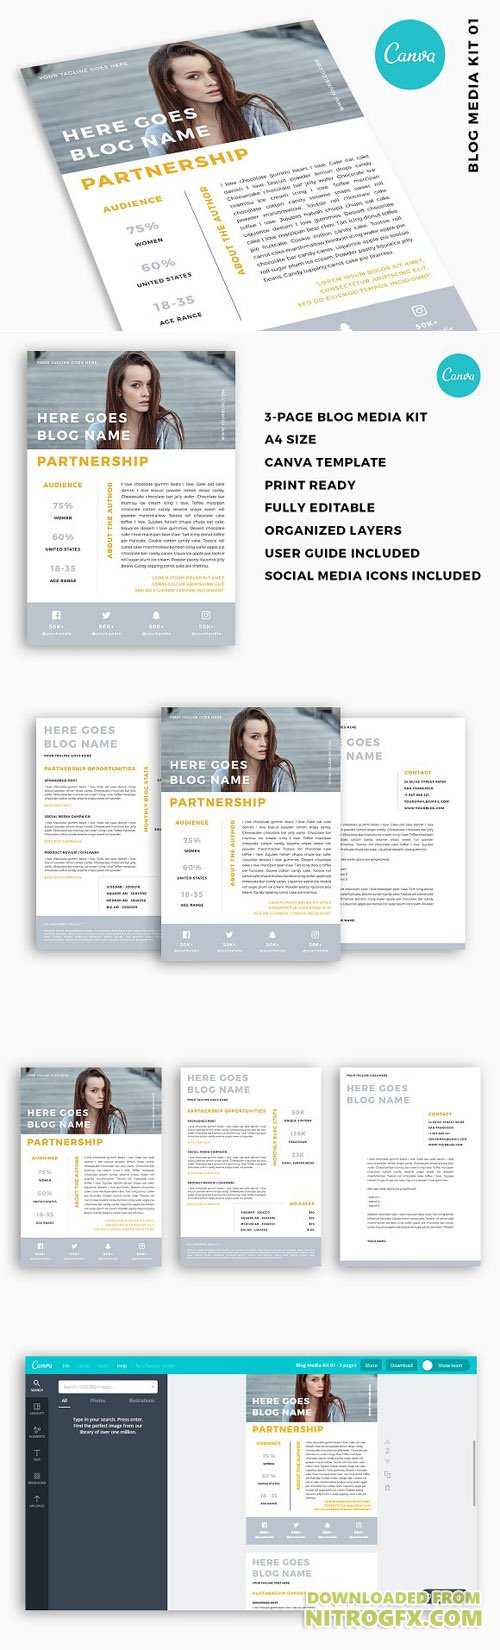 CM - CANVA Blog Media Kit 01-3 pages 1706030